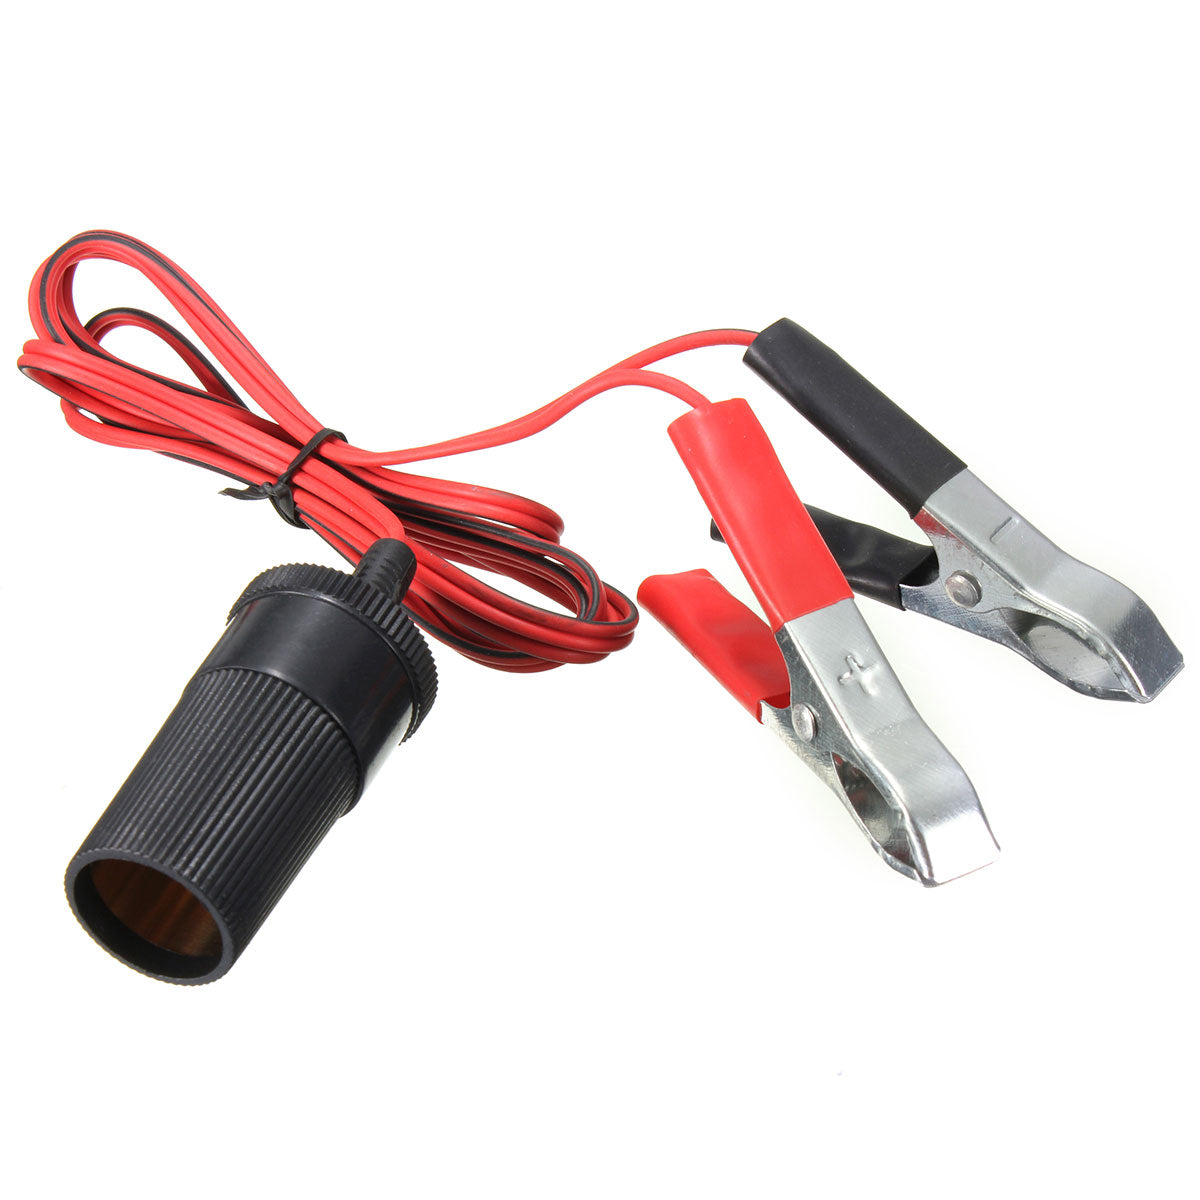 Auxiliary Socket Cigarette Lighter Clip On Crocodile Leisure Battery Jump Cable Clips 12V